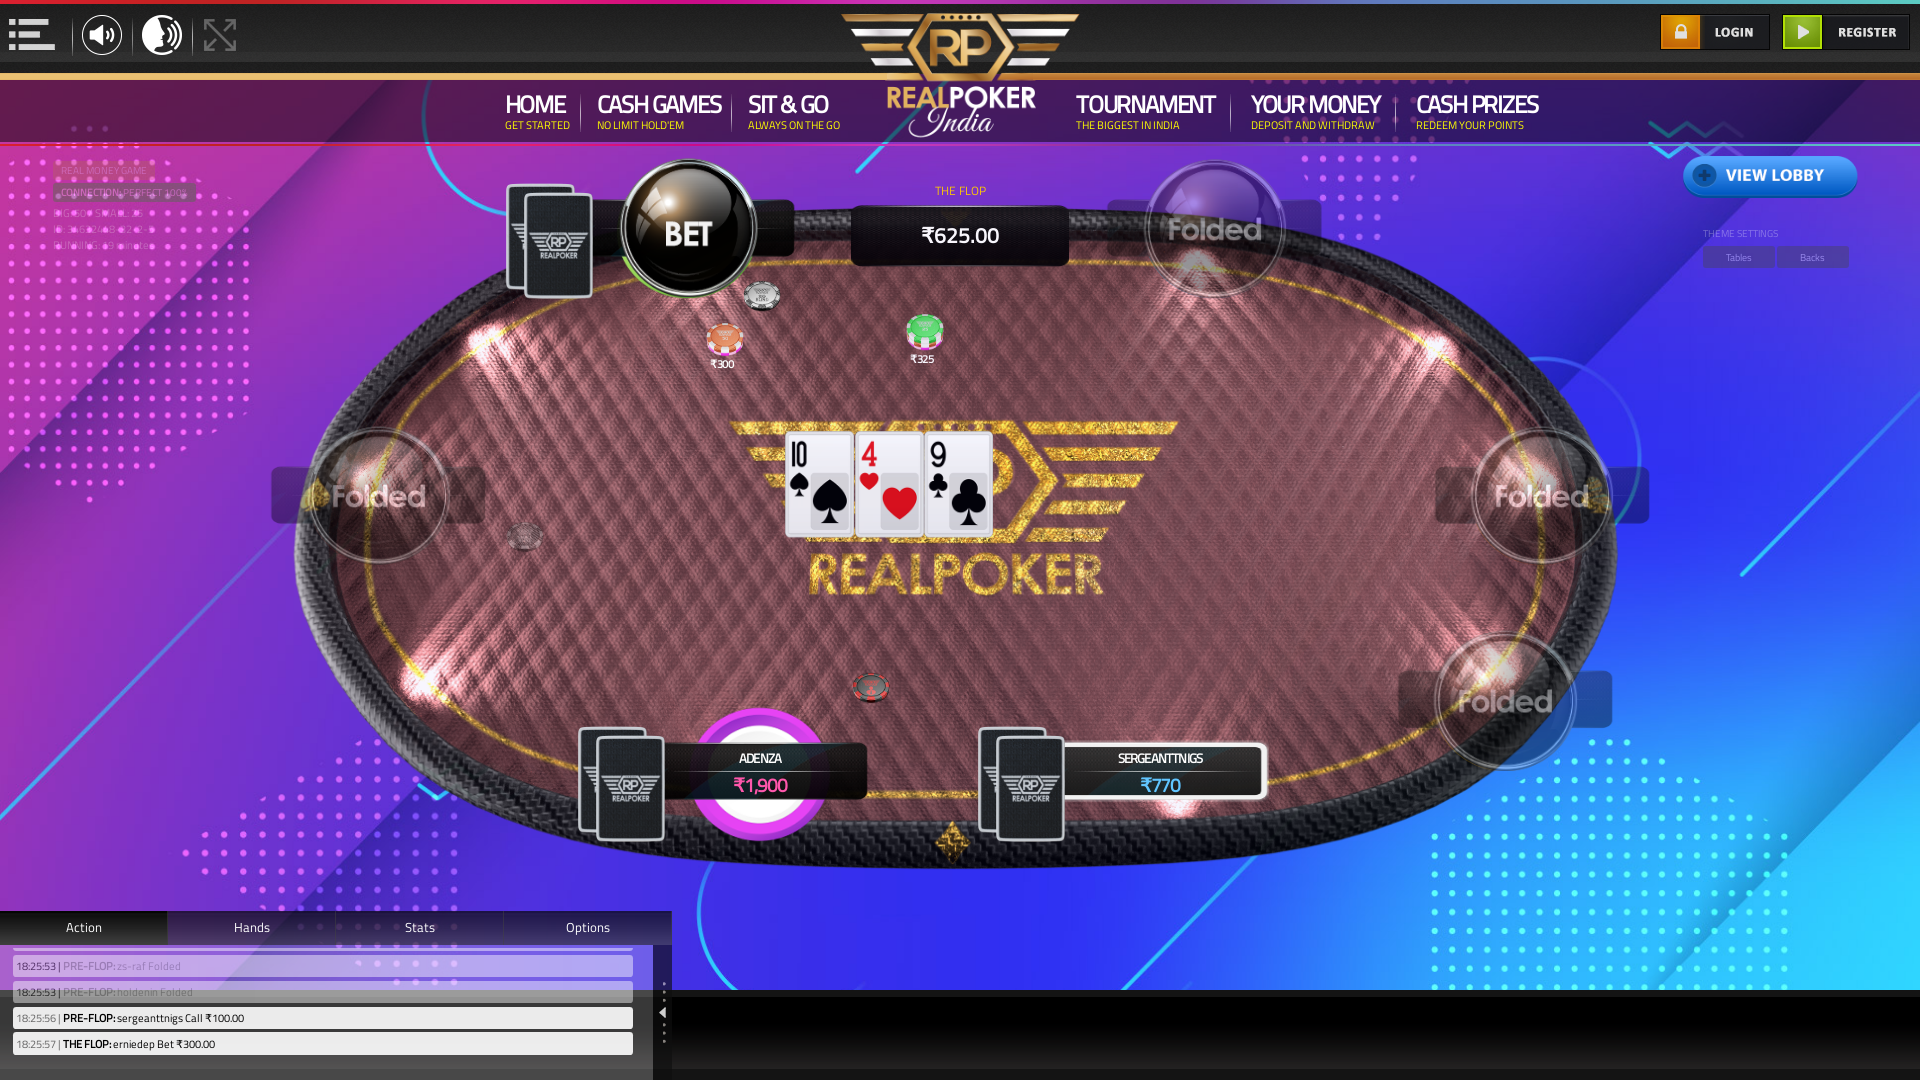 10 player texas holdem table at real poker with the table id 34632448